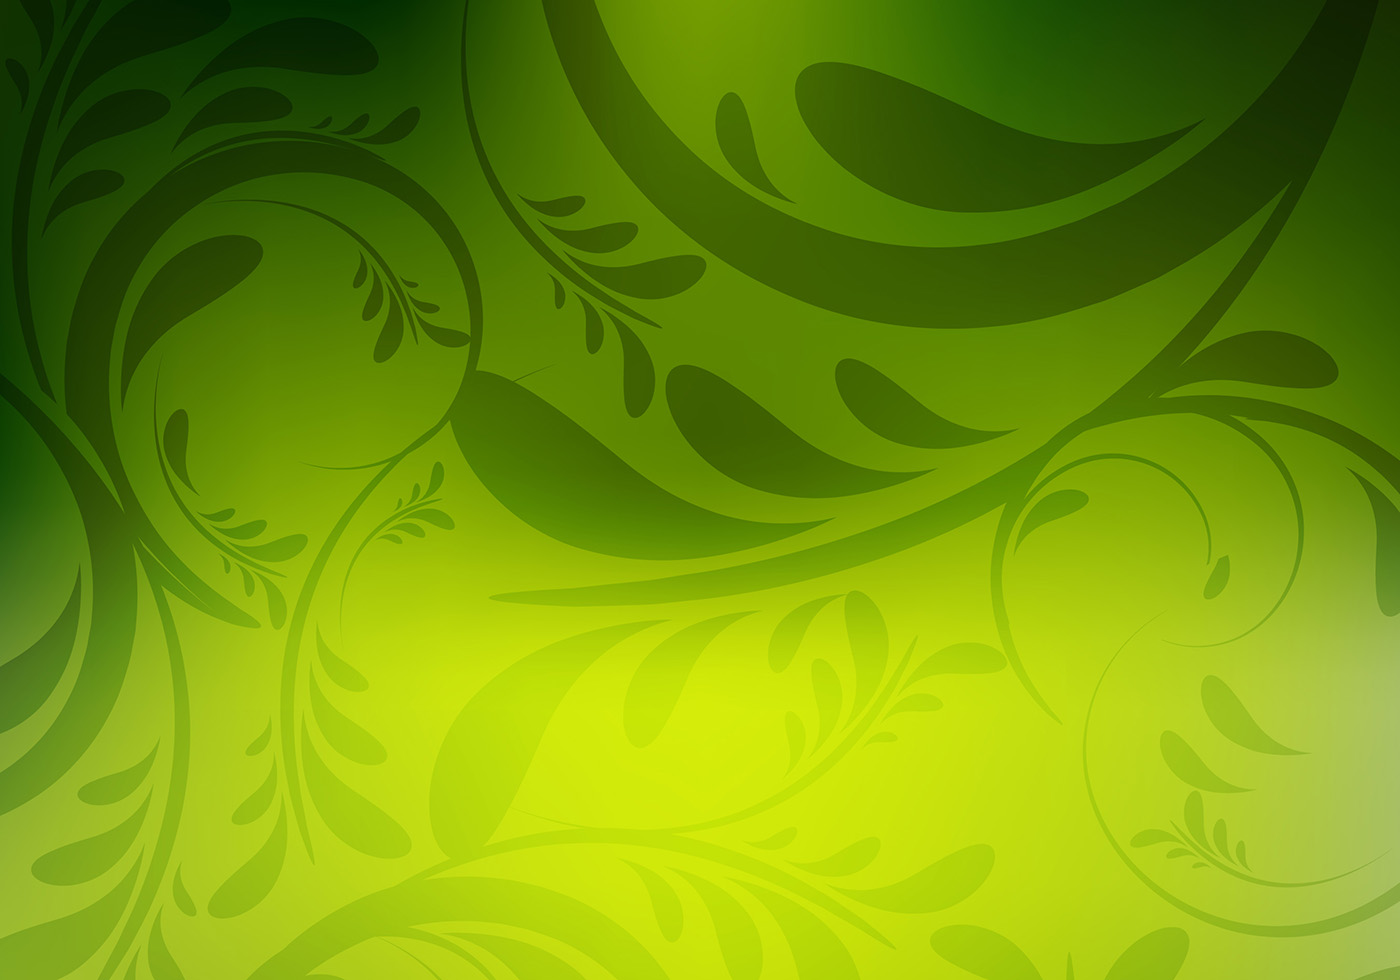 Green Color Free Vector Art - (25419 Free Downloads)